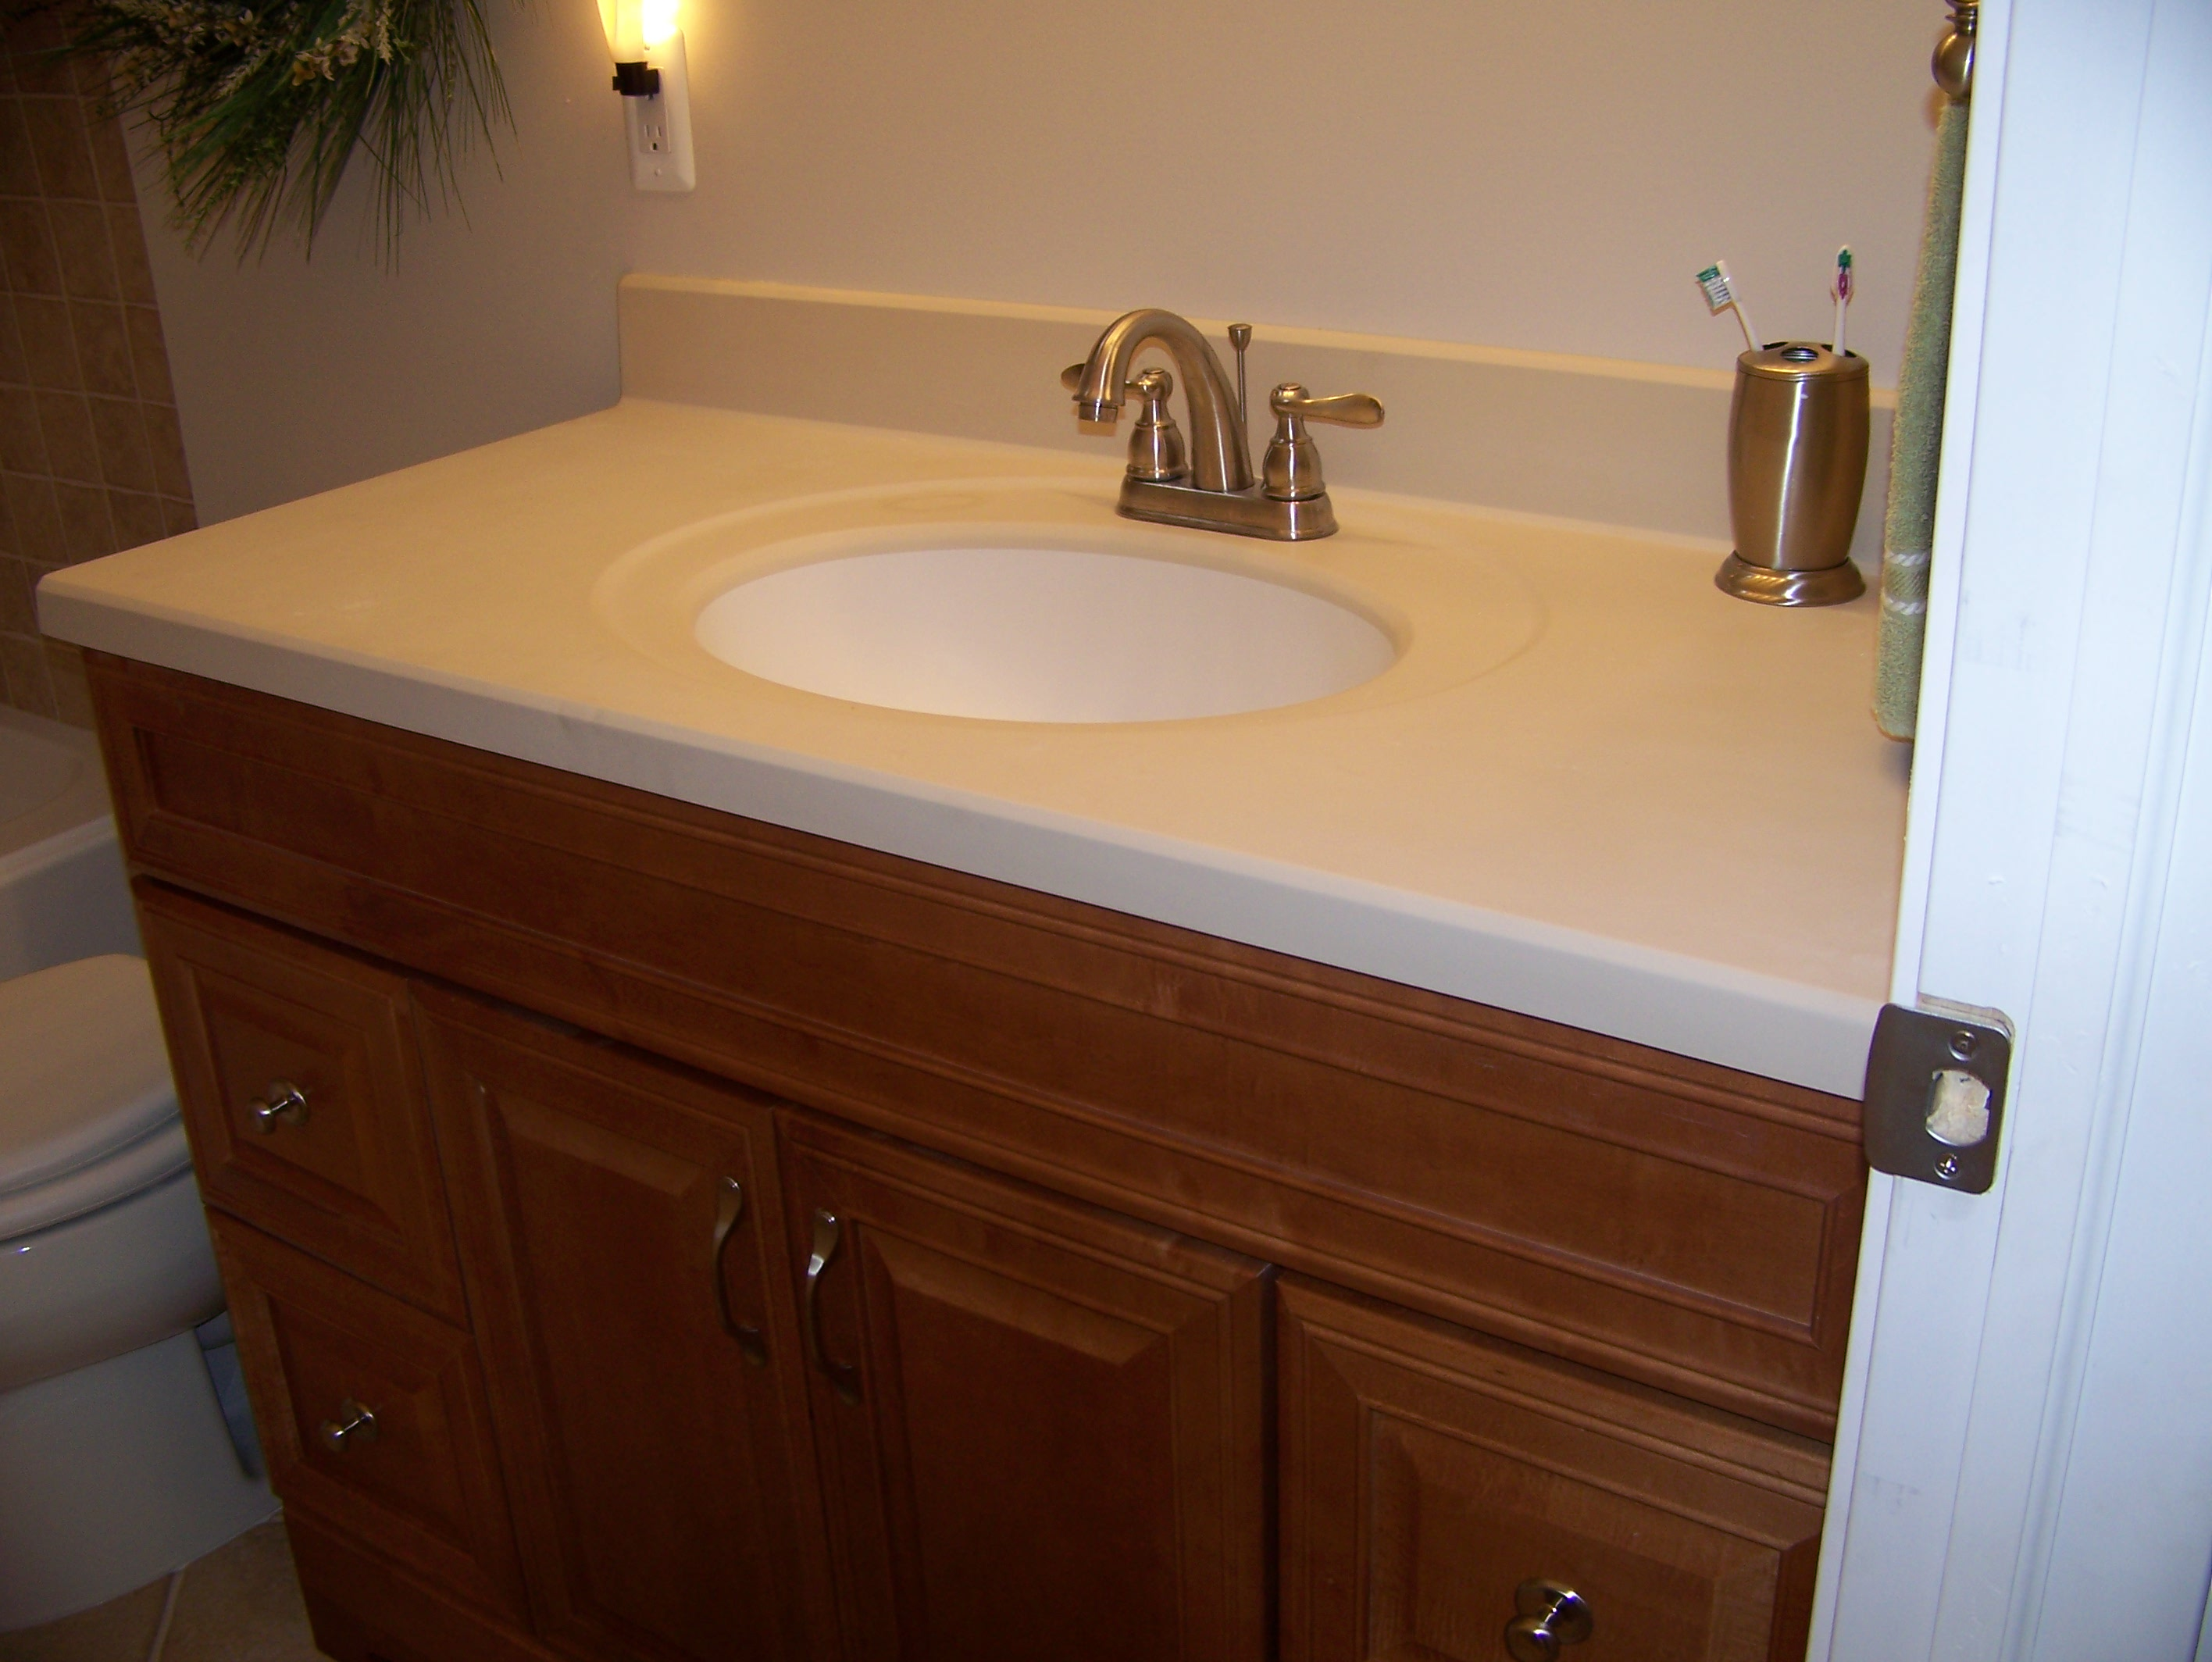 canton michigan bathroom remodeling pictures for ideas